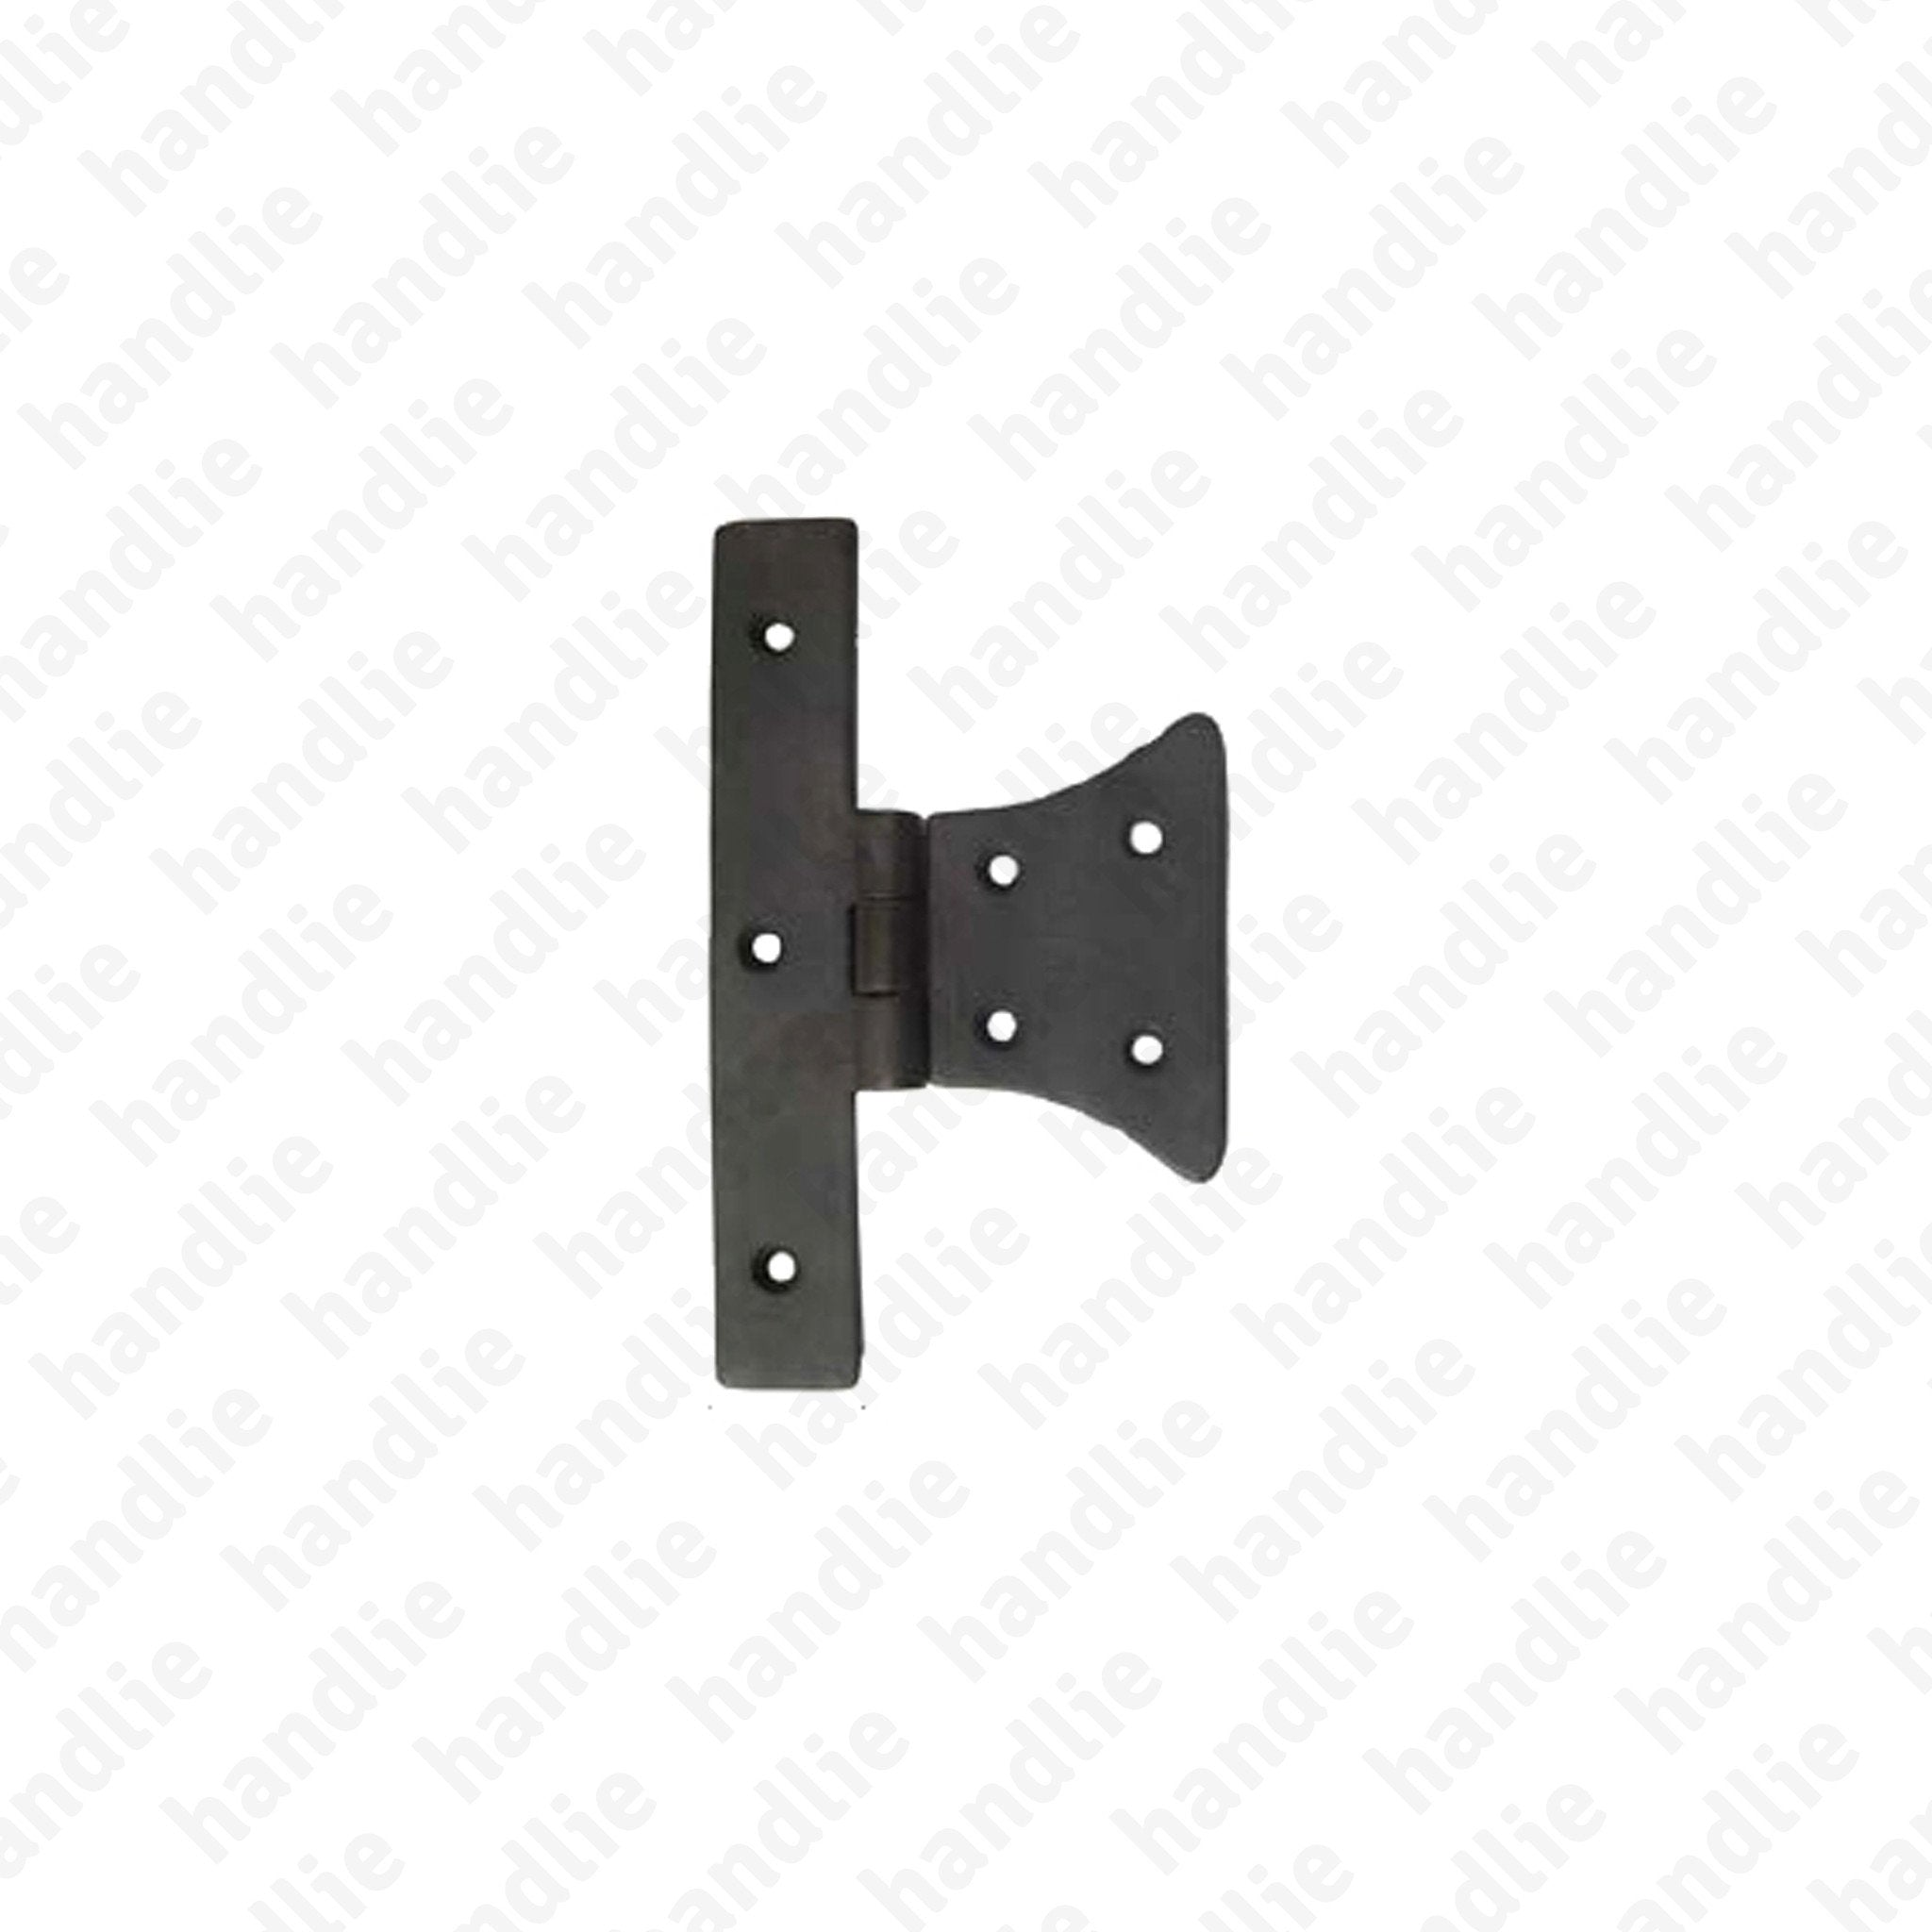 Lm 218 Half Butterfly Hinge For Shutters Brass